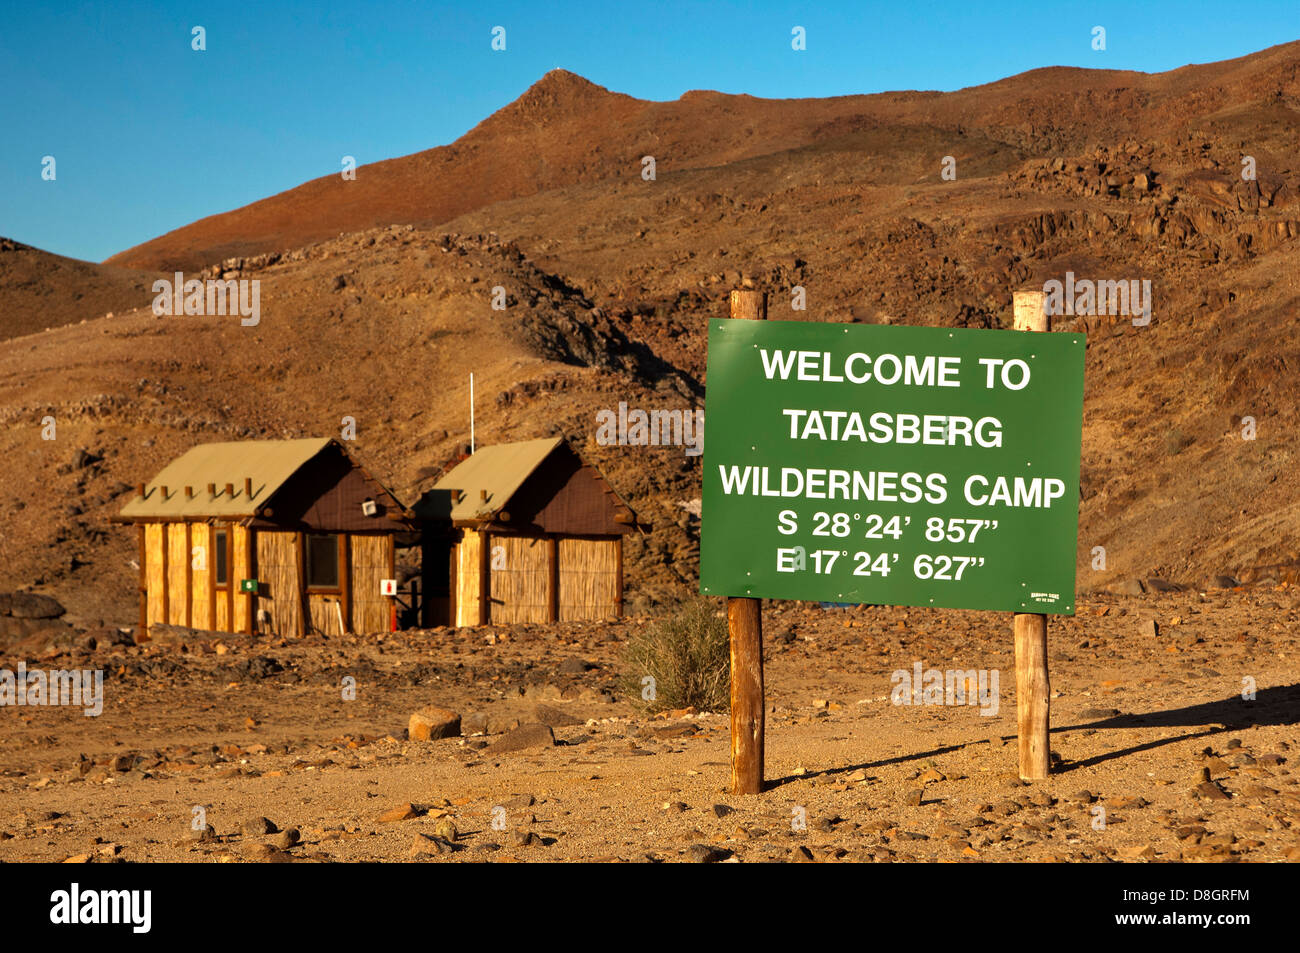 Welcome sign with GPS location information at the entrance to the Tatasberg Wilderness Camp, Richtersveld, South - Stock Image